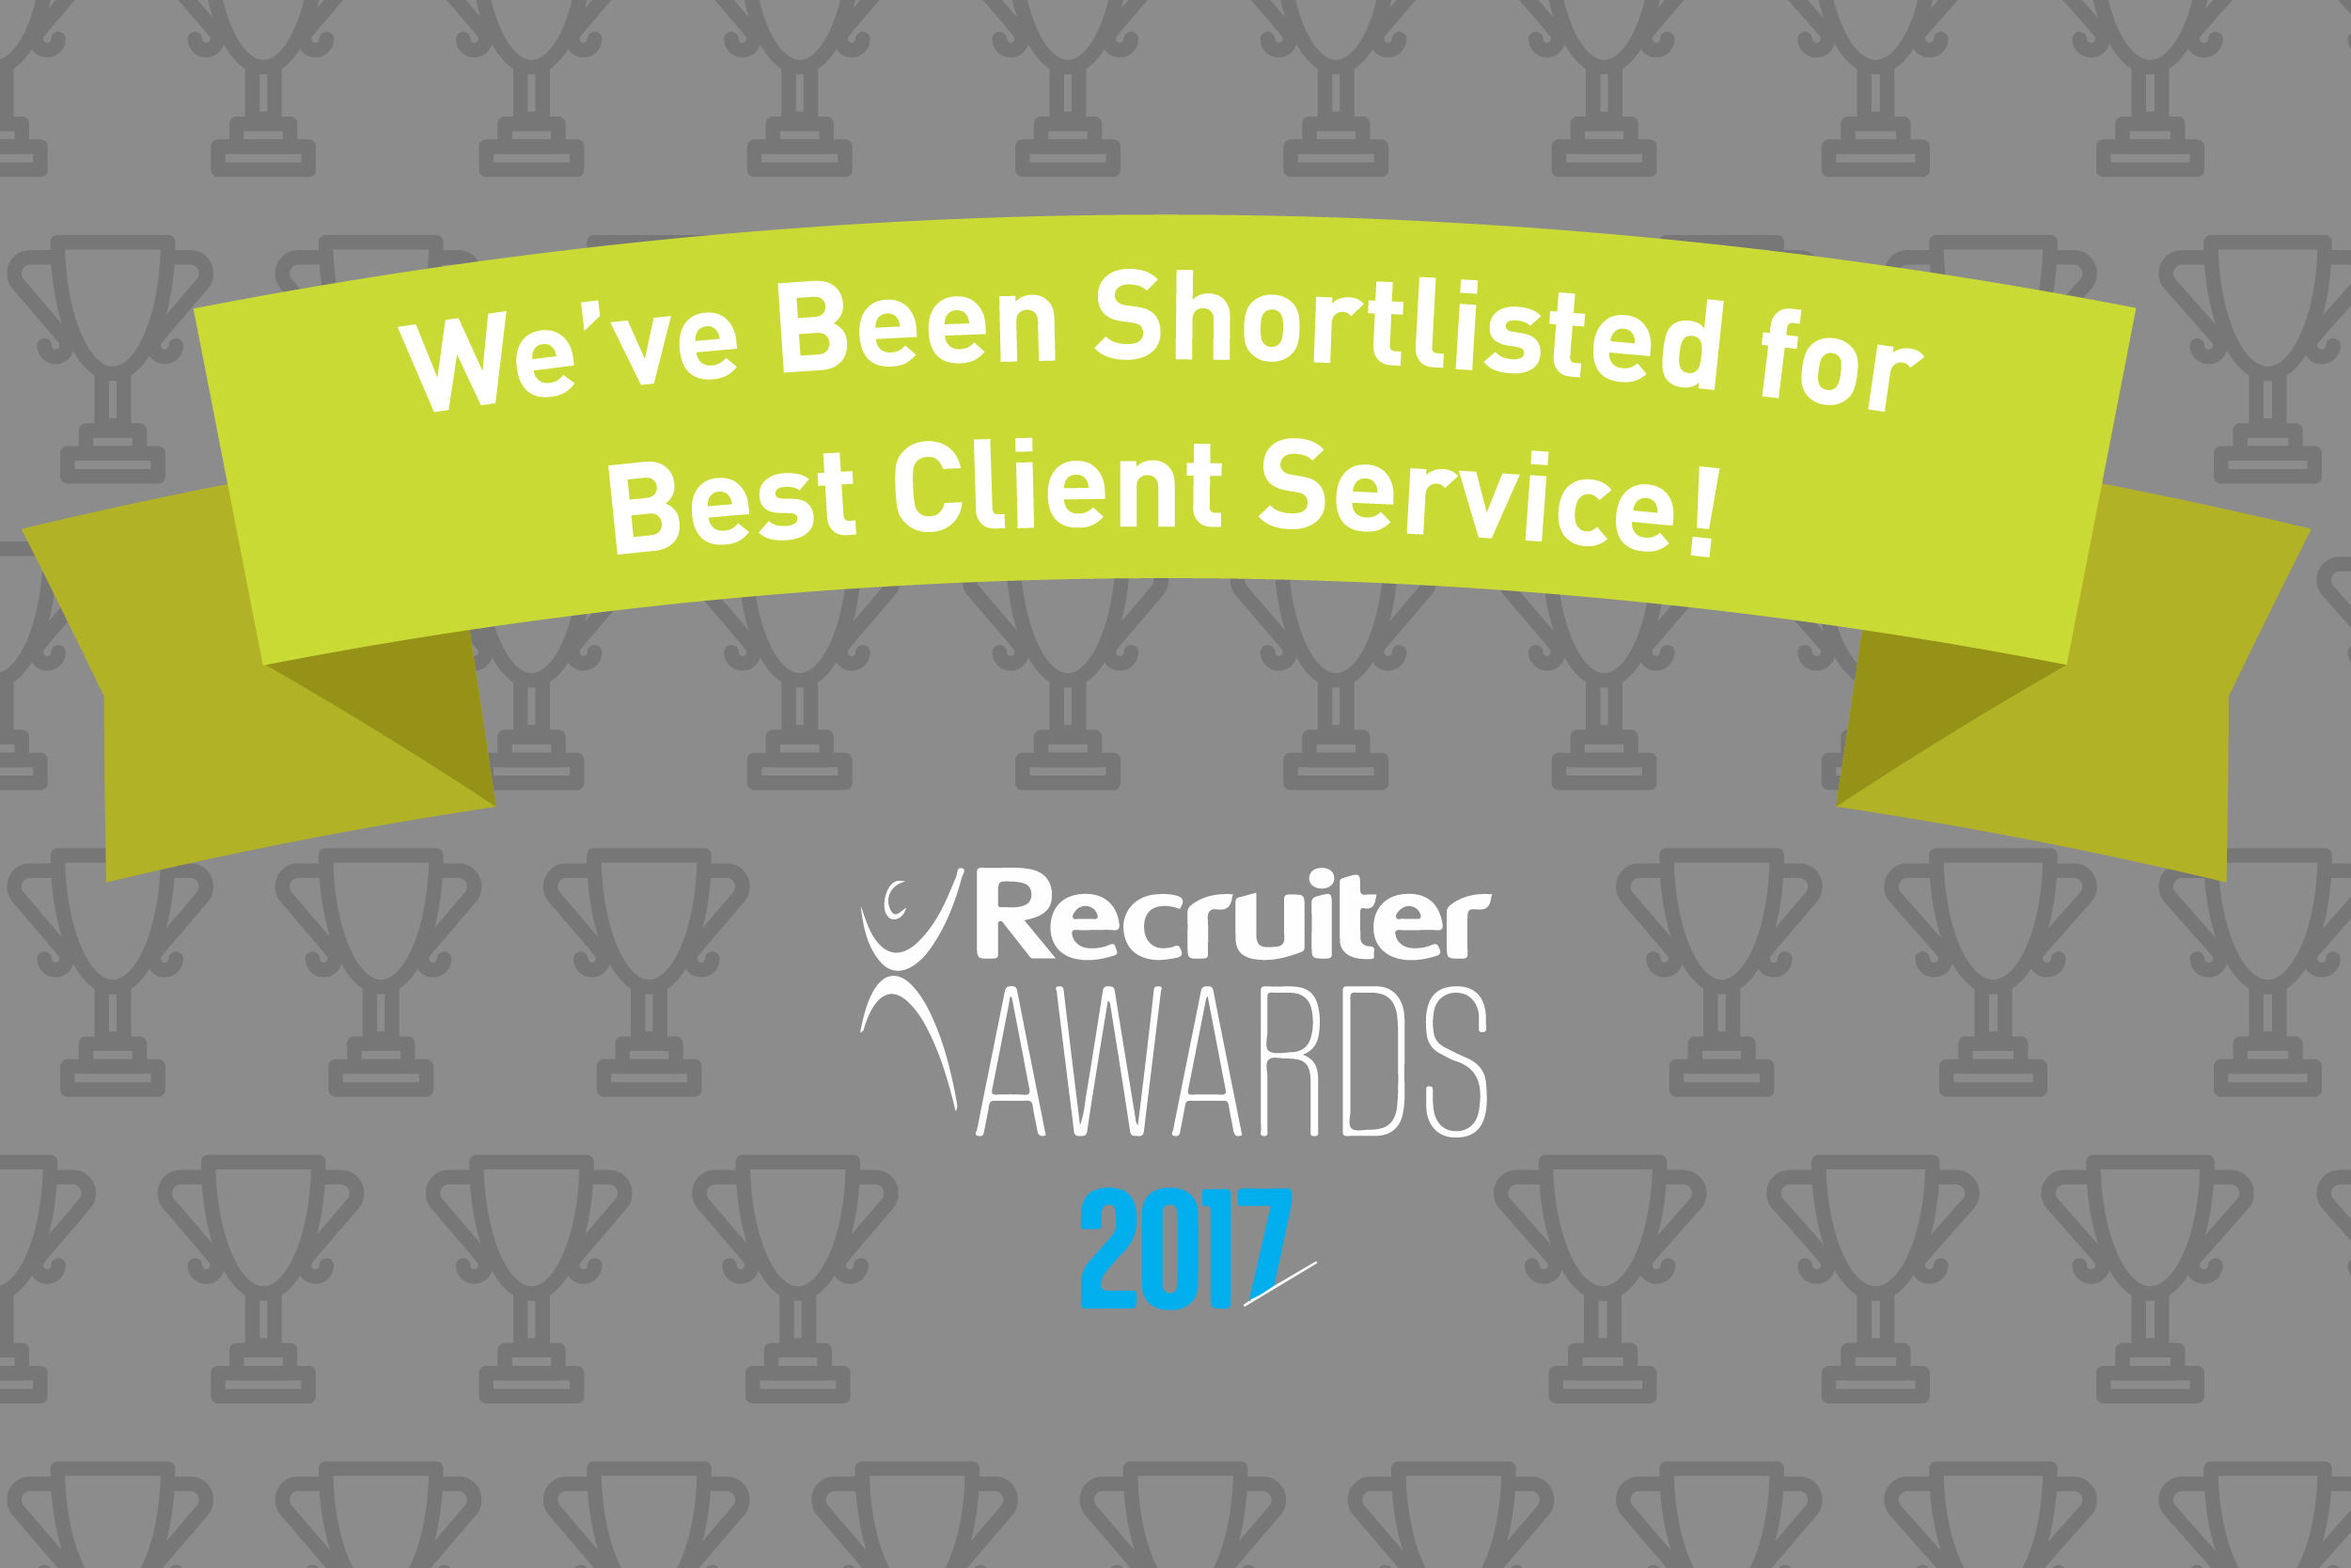 We're in the Running for Best Client Service!